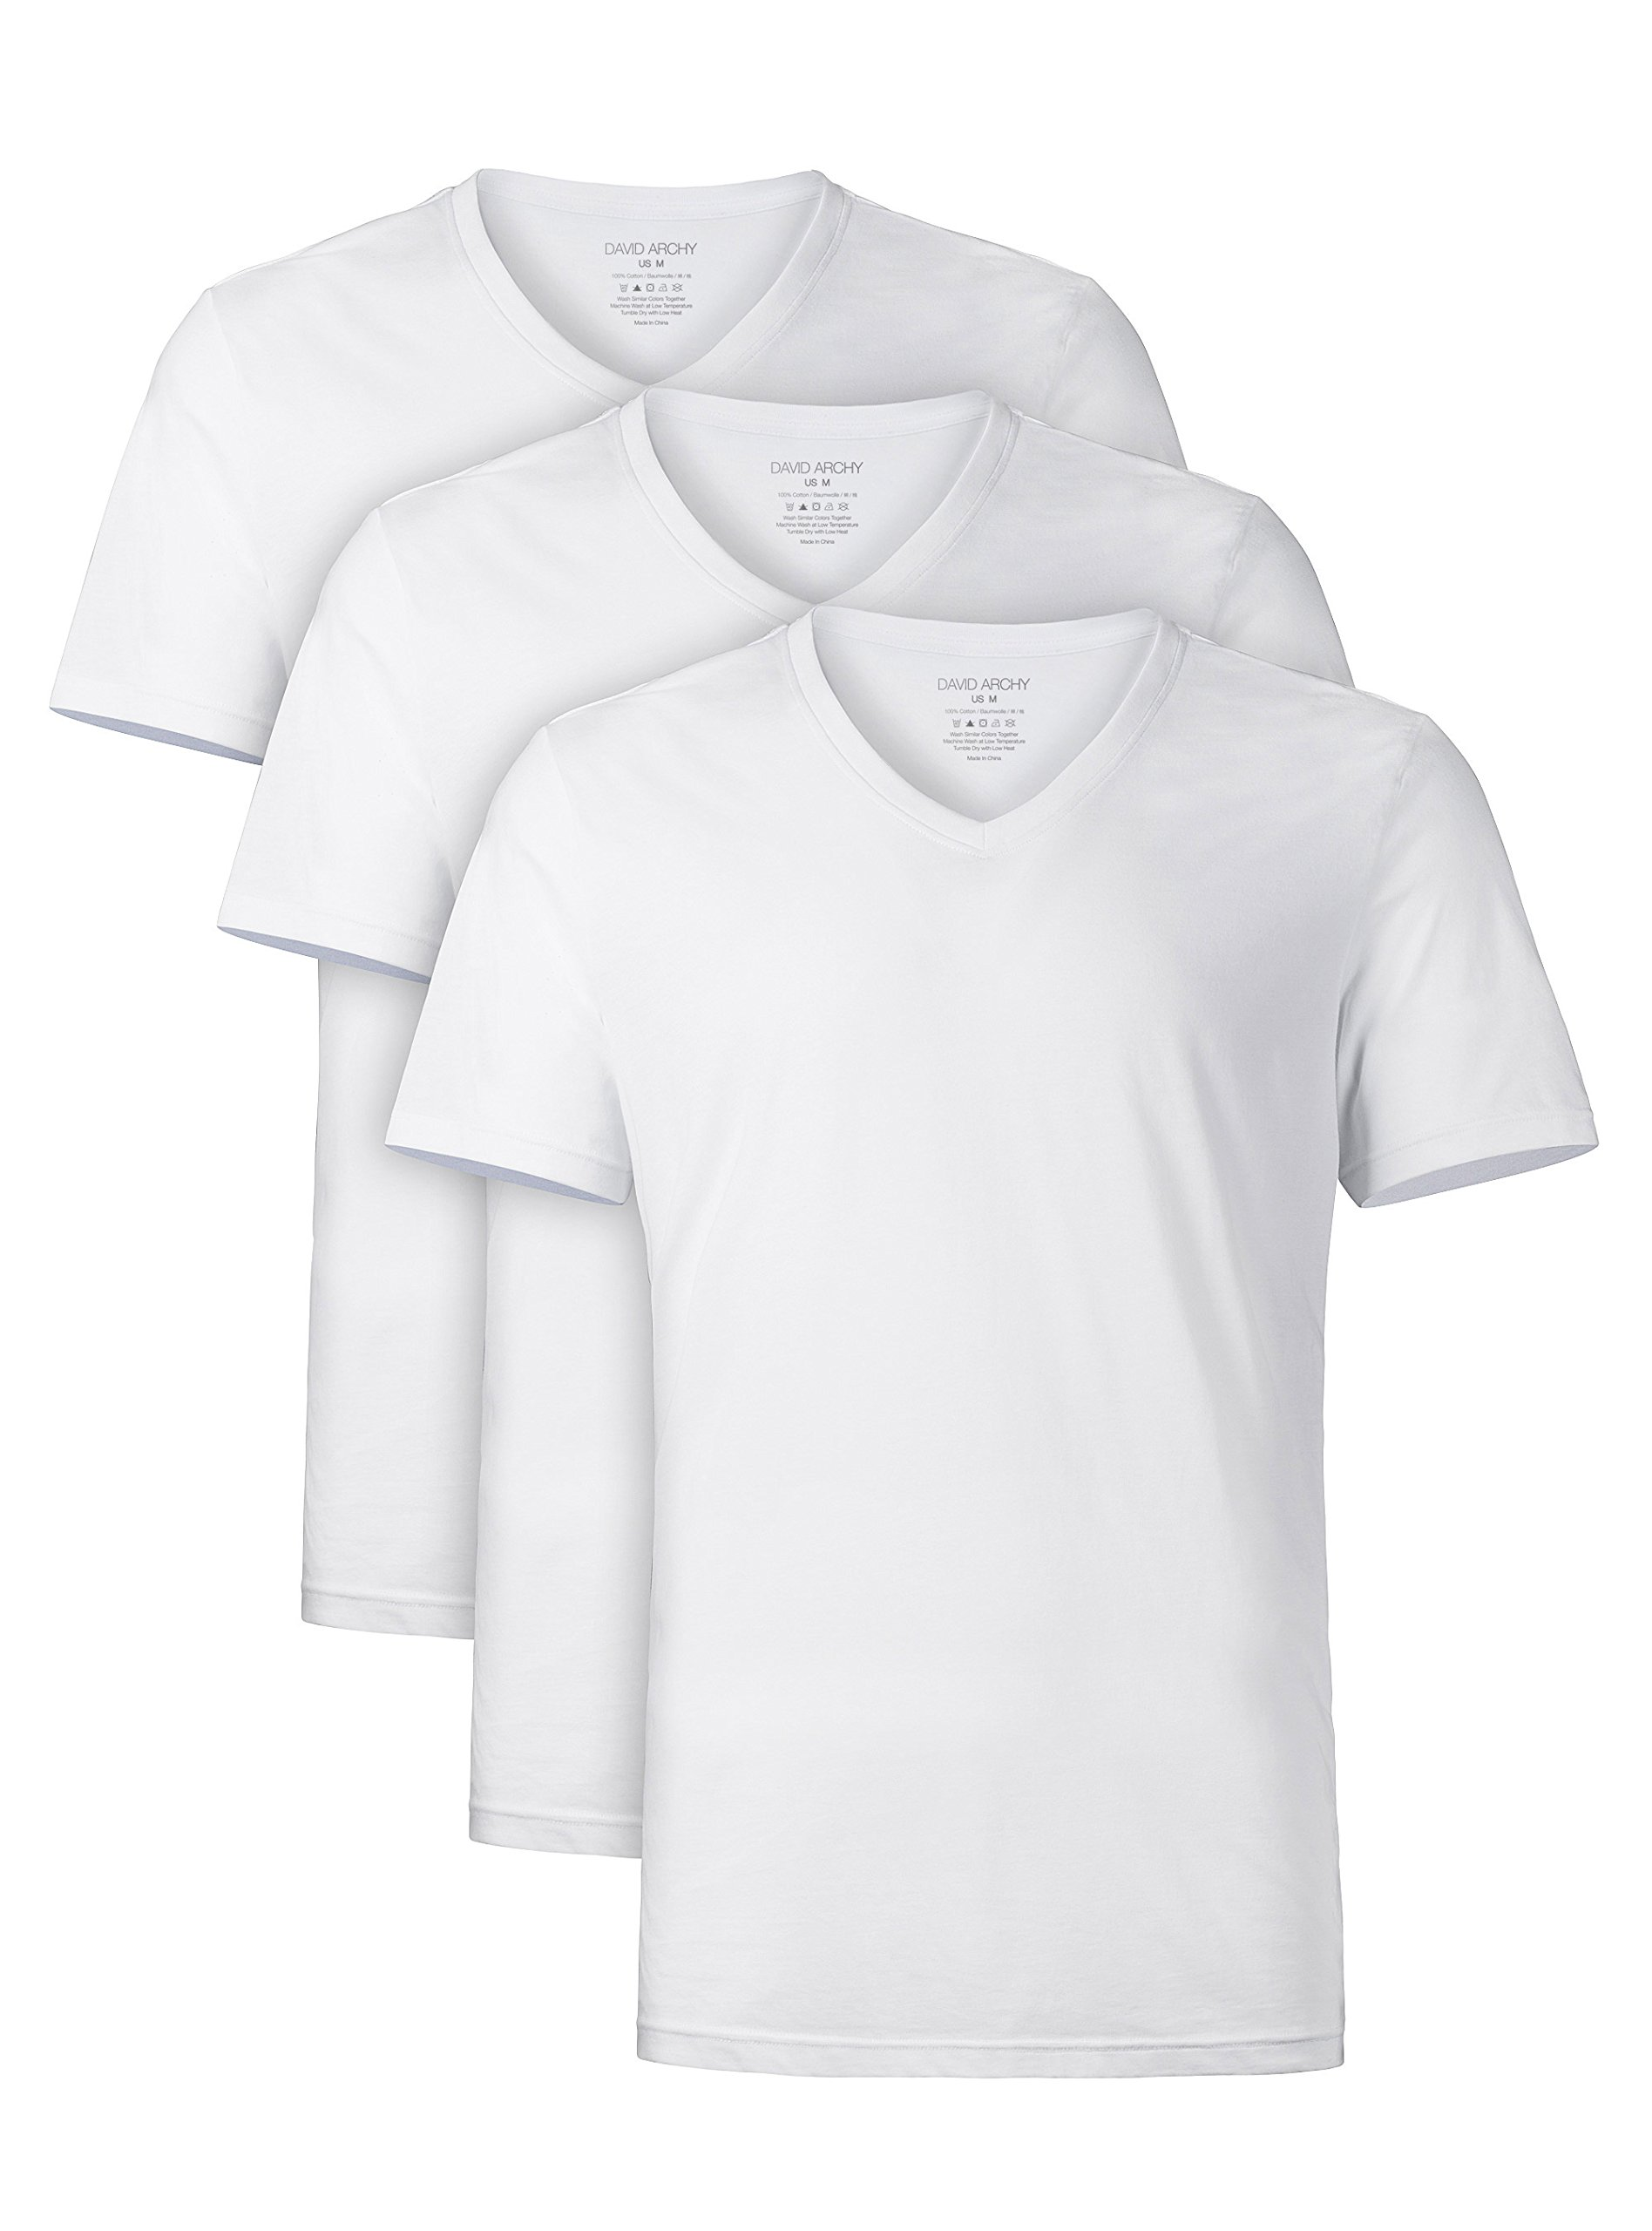 David Archy Men's Short Sleeve V-Neck Cotton Undershirts T-Shirts 3 Pack (L, White)